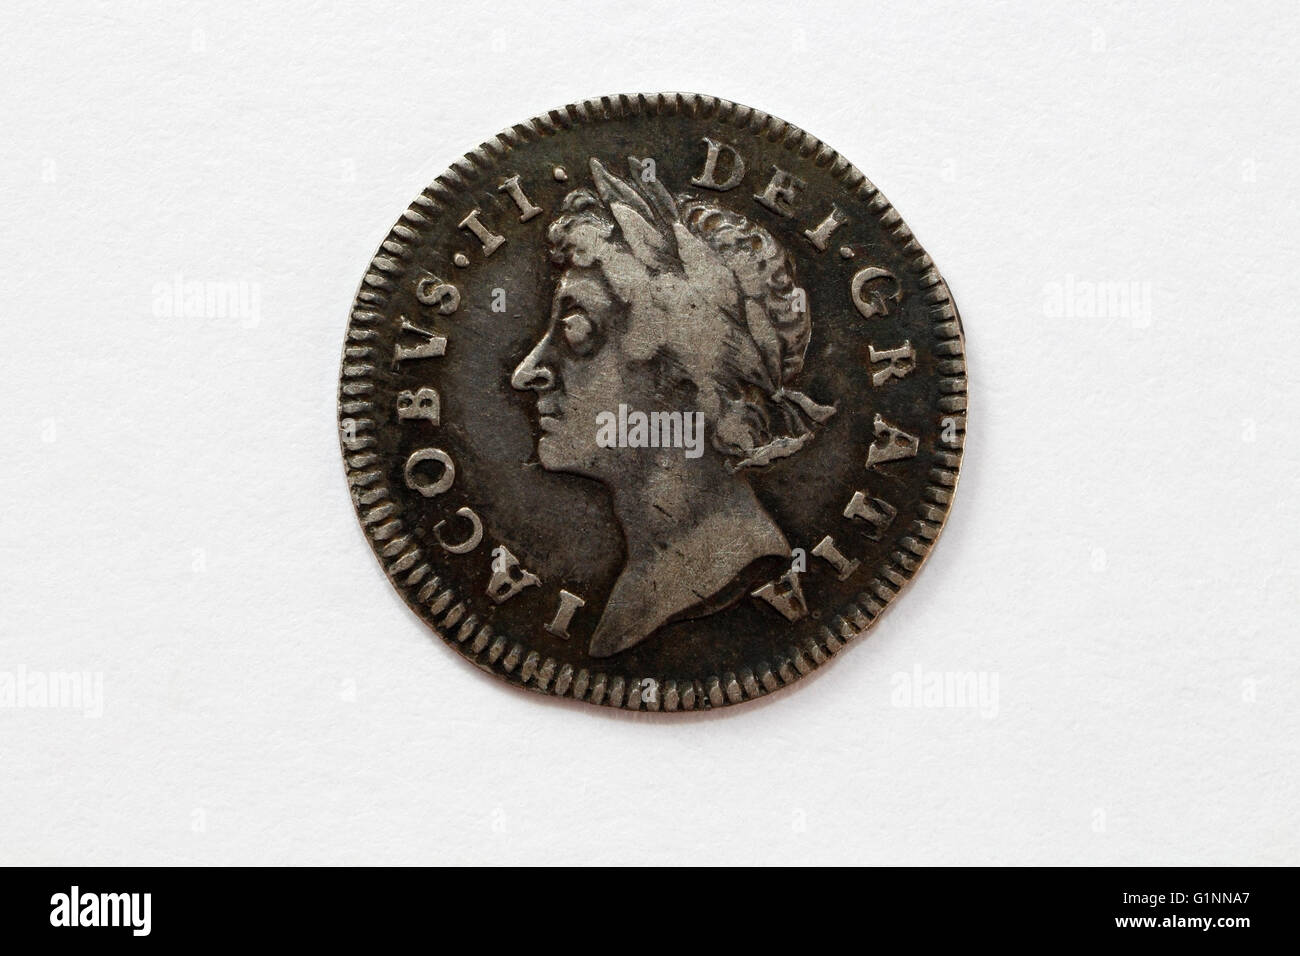 King James 2nd bust on obverse of silver threepence coin - Stock Image